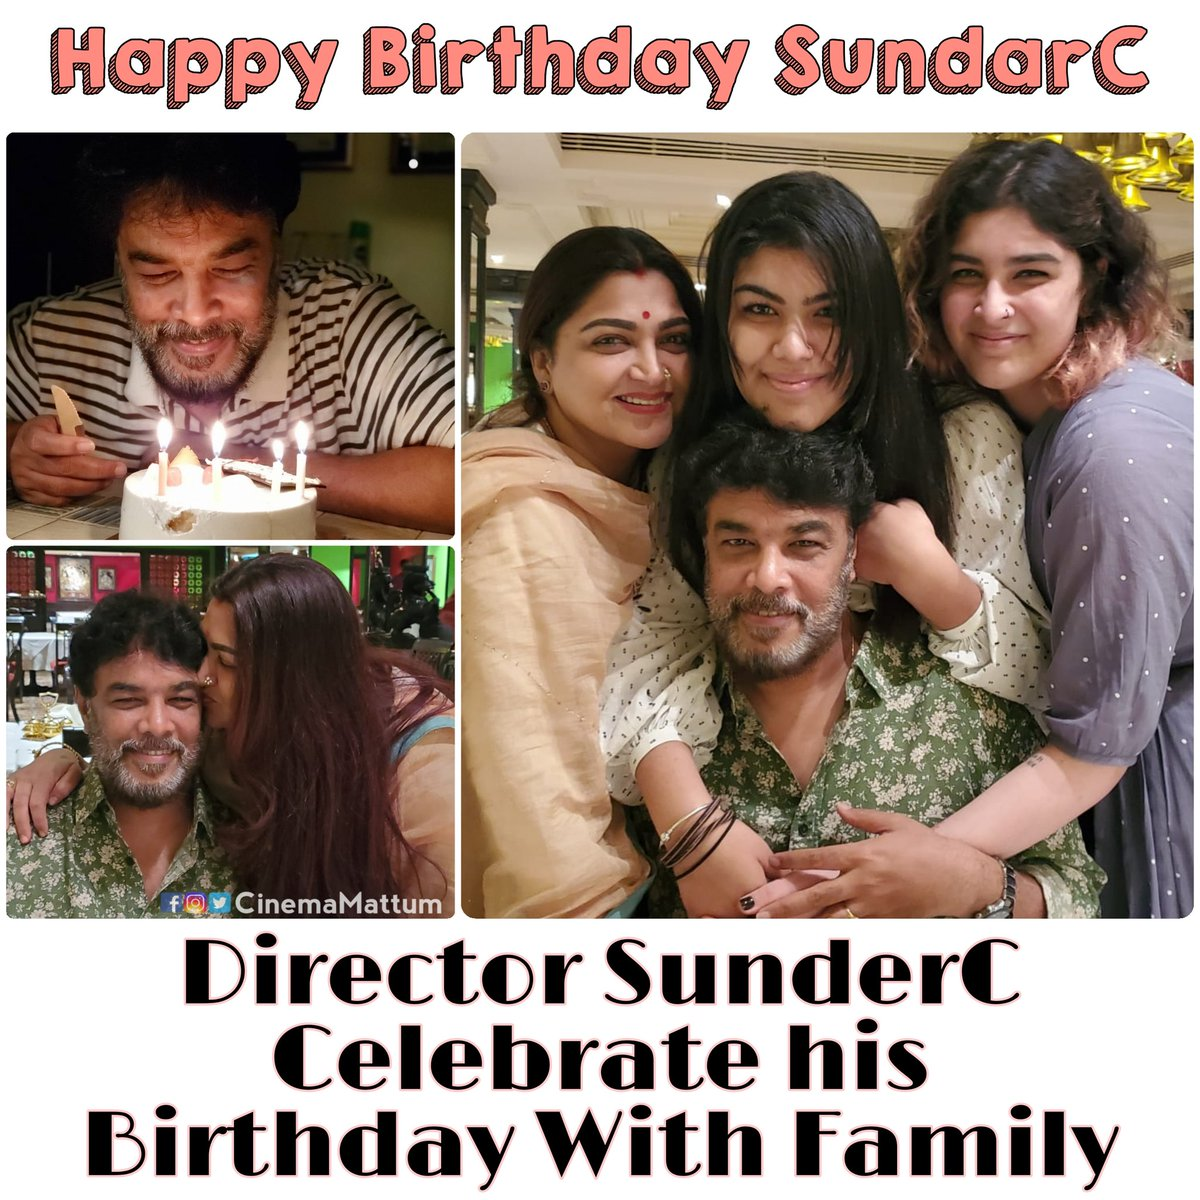 #director #actor #producer #SundarC #celebrate his #birthday with #family #HBDSundarC #HappyBirthdaySundarC  #happyfamily #FamilyPhoto #celebratebirthday #cinemamattumfamily #cinemamattum  #sundarcdirector #sundarcmovies  #kushboo #kushboosundar #kushboosundarc #avinipictures